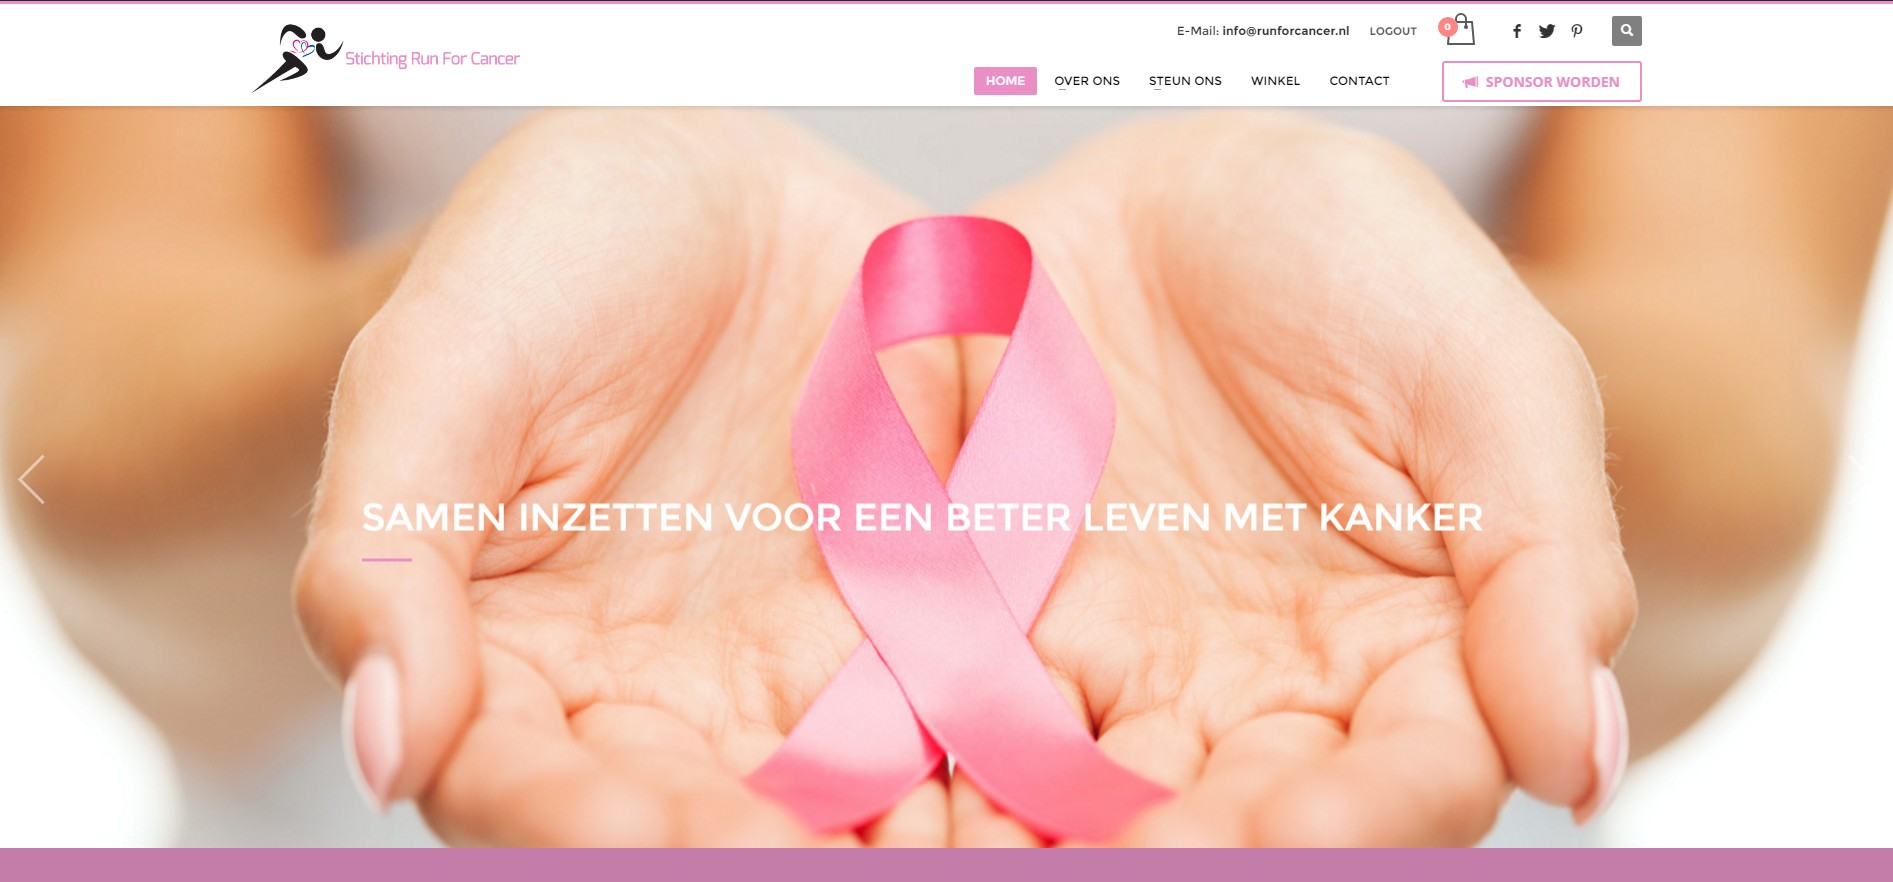 Stichting run for Caner Website